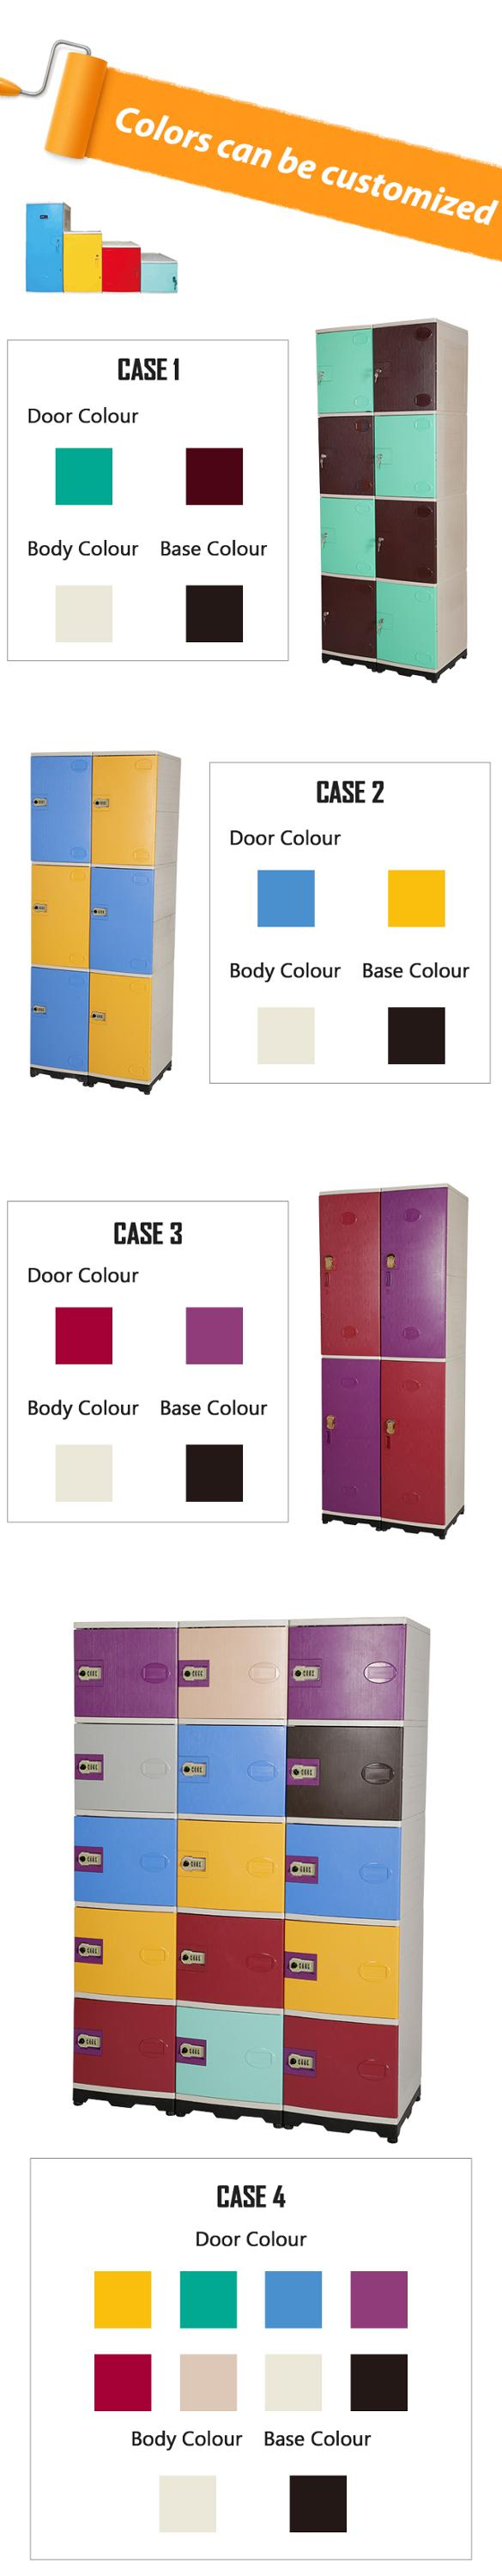 strong ABS Locker with 4 compartments for storing personal belongings